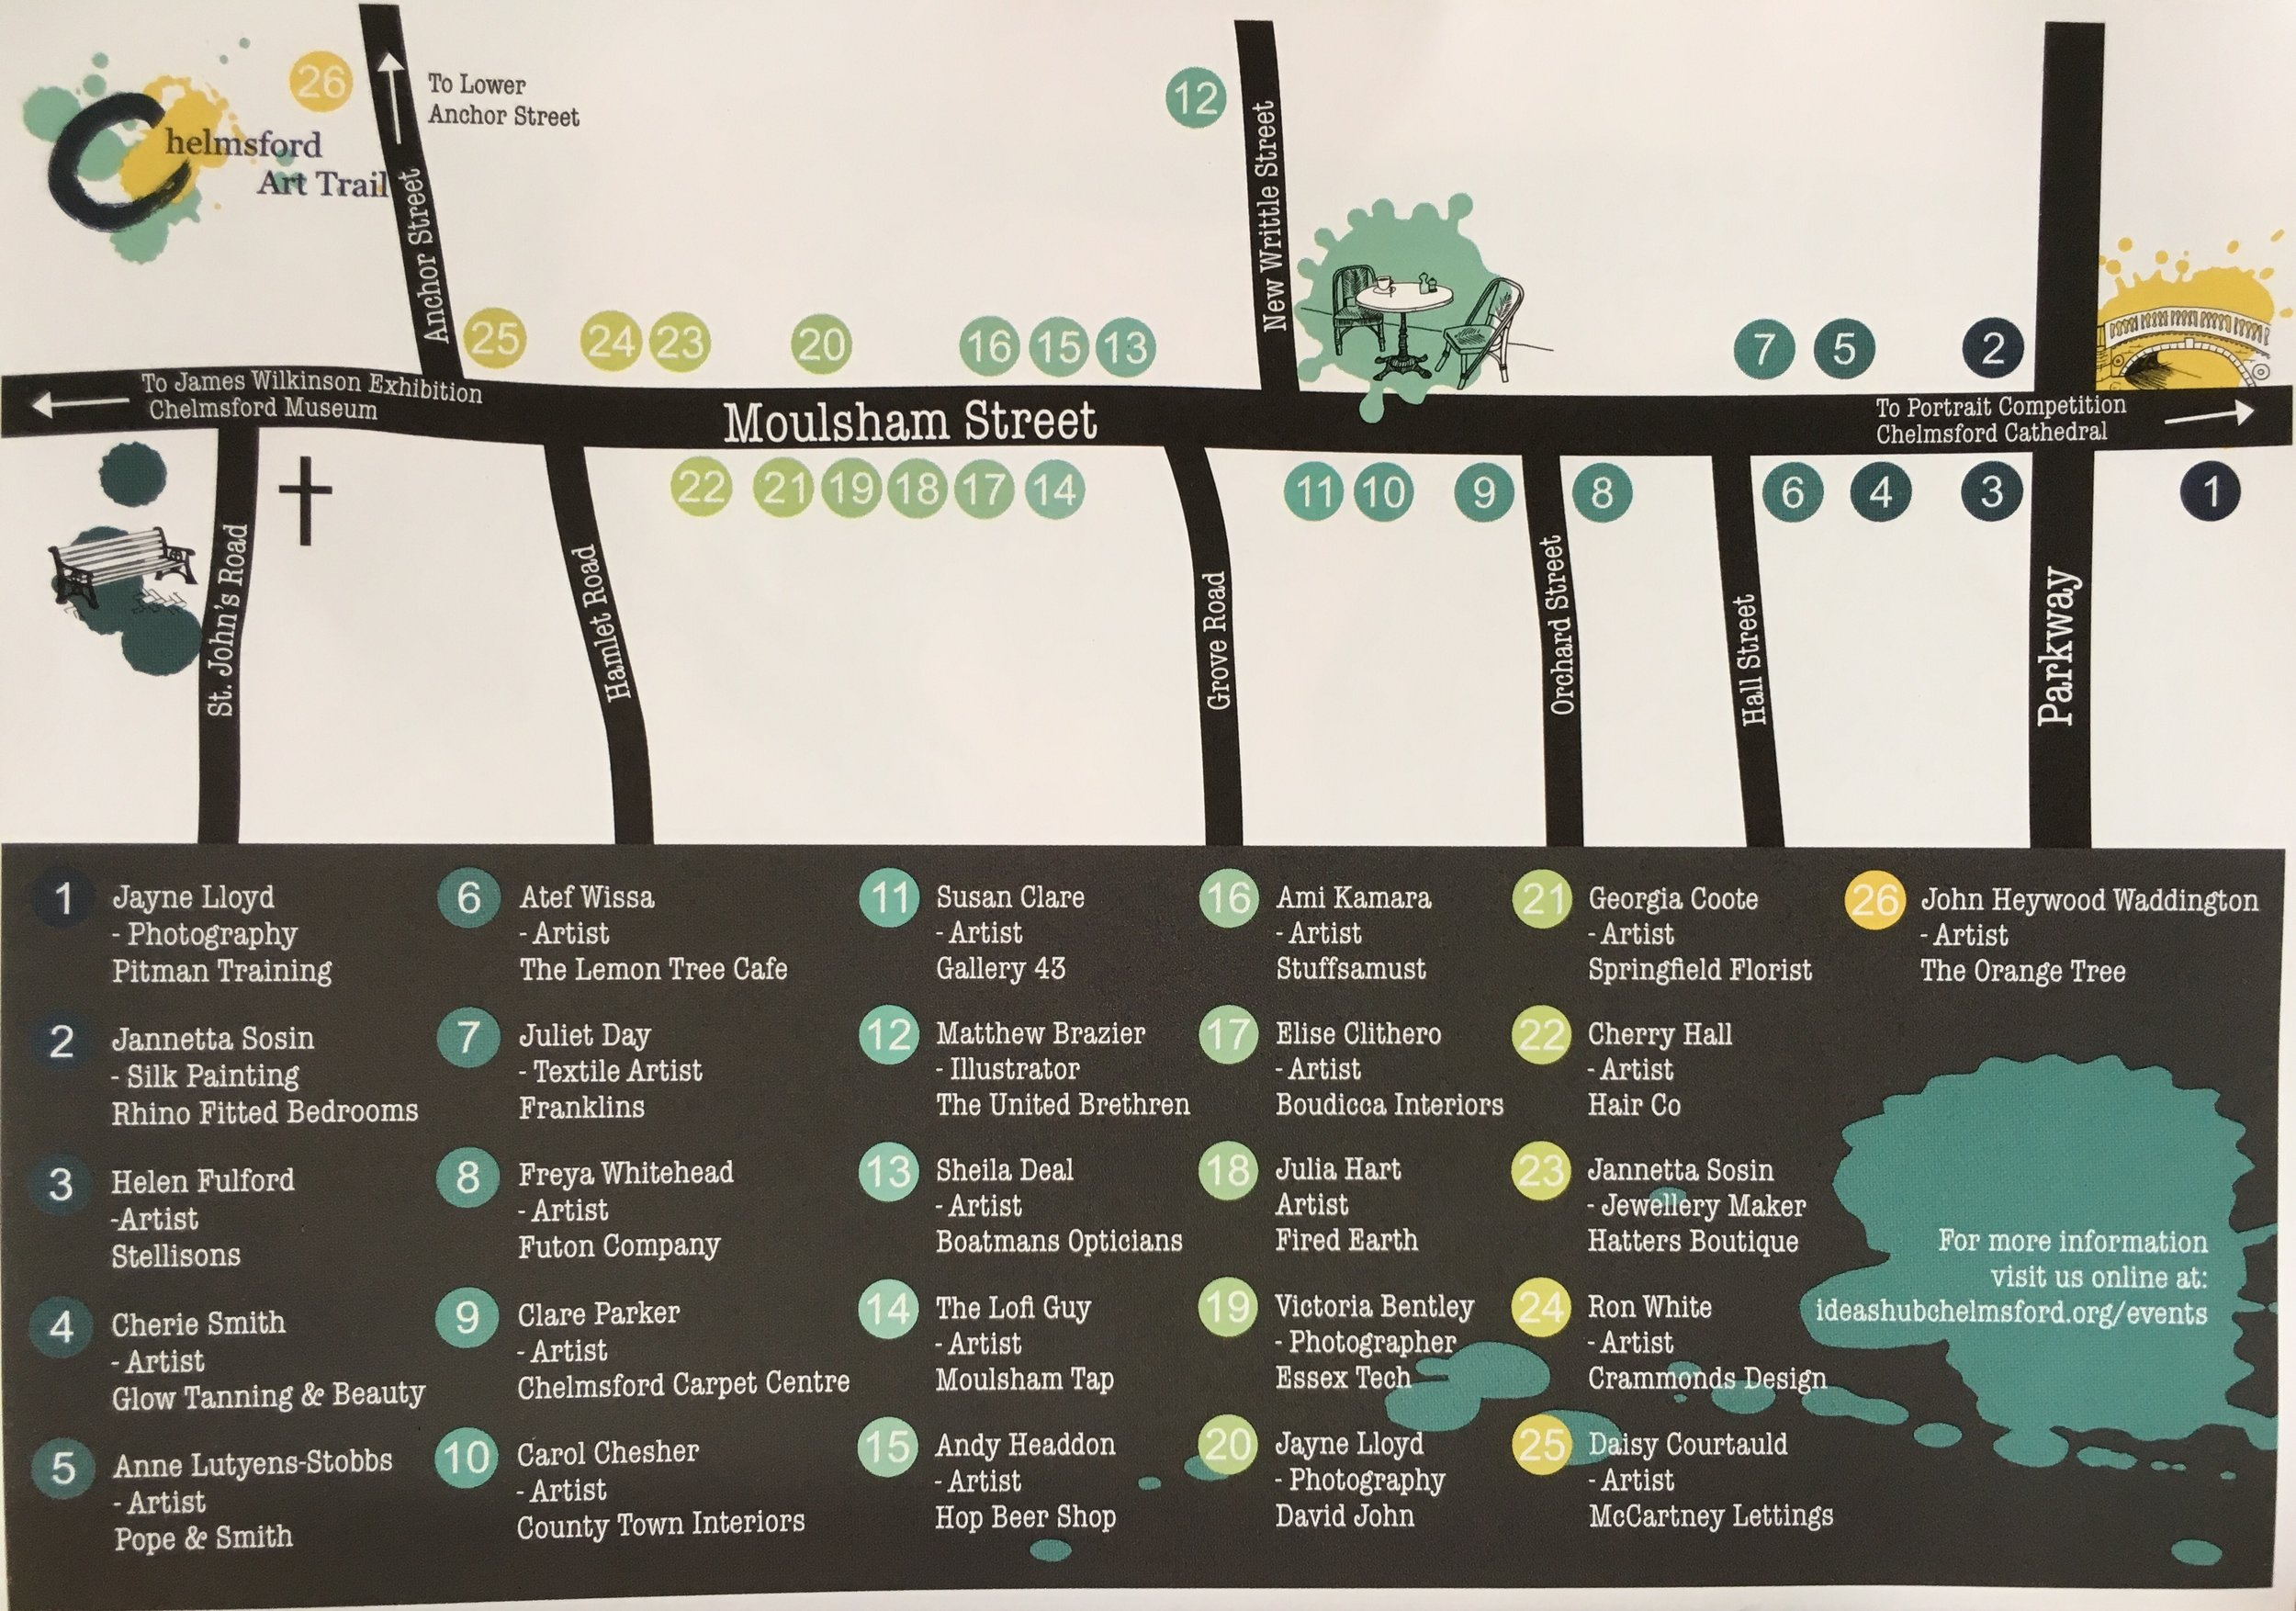 Here's the map of Moulsham Street - I'm at location 11, inside Gallery 43.